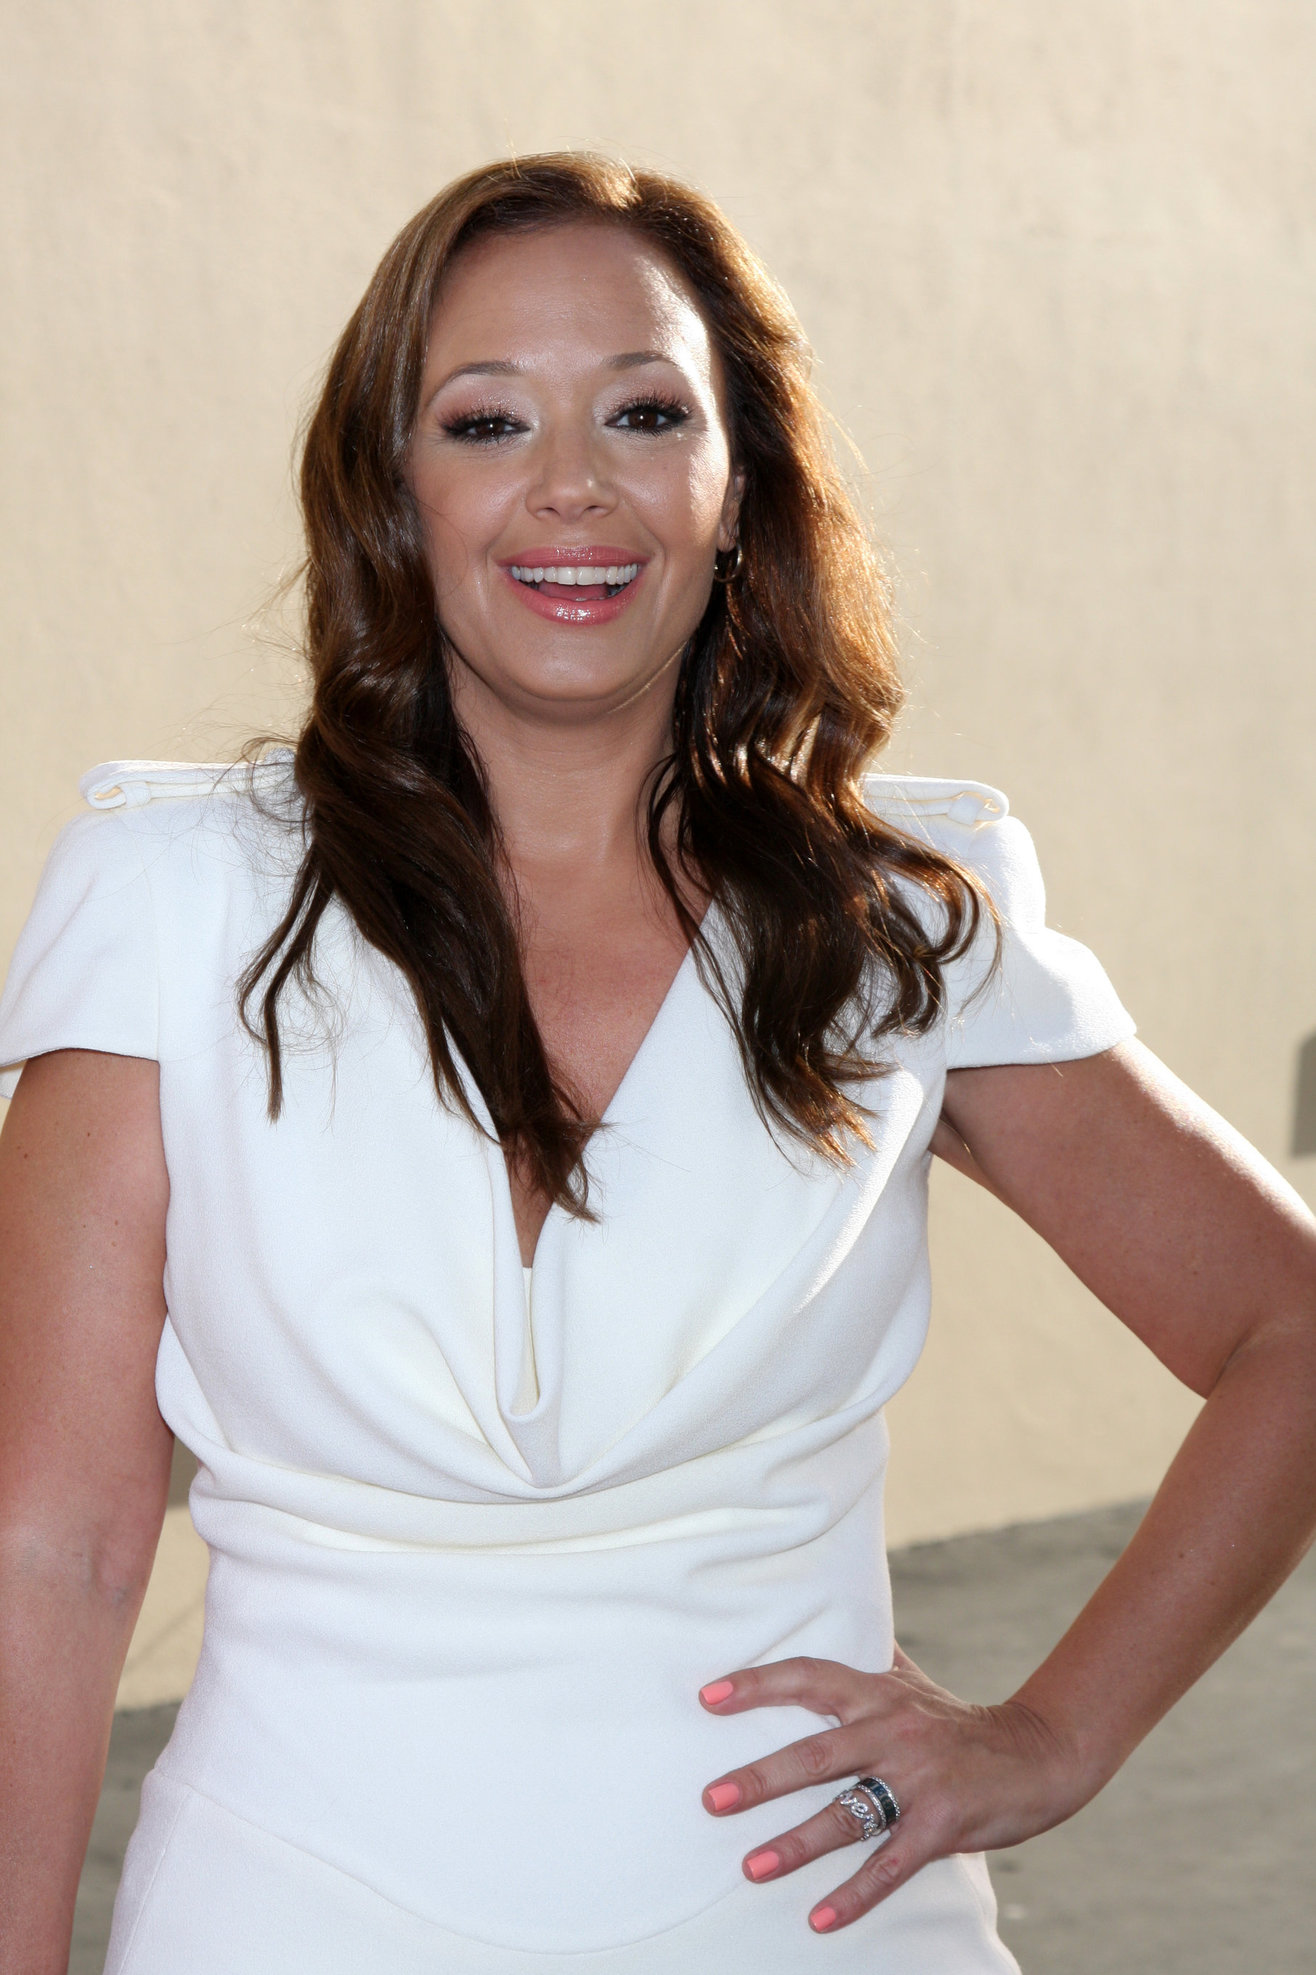 Leah Remini - Disney Media Networks 2012 International Upfronts in Burbank (May 20, 2012)